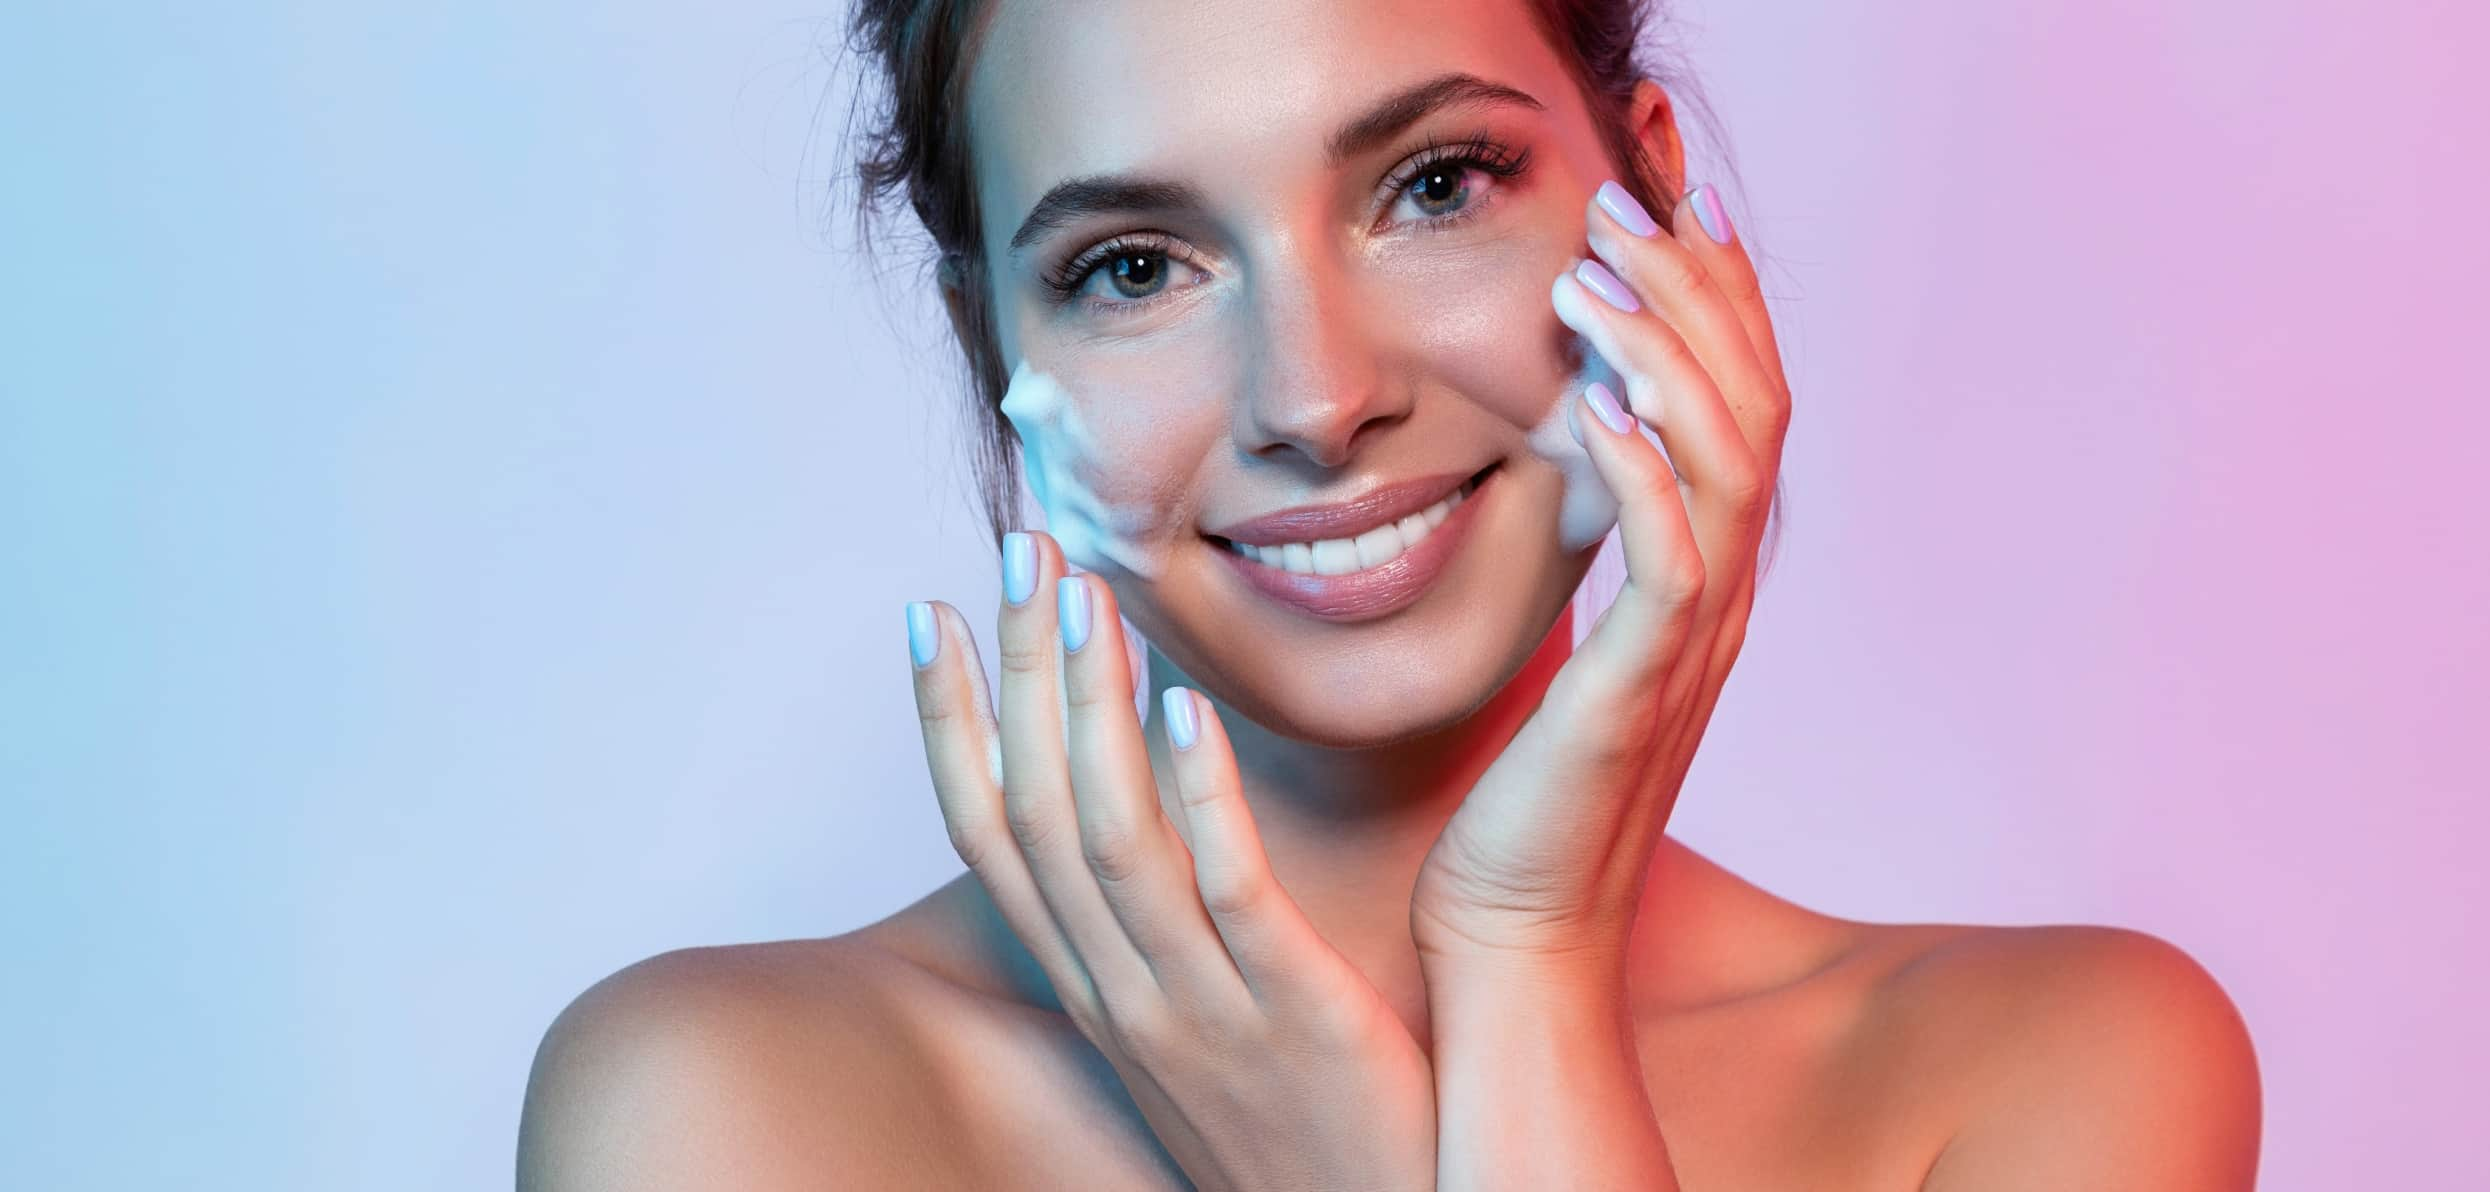 Smiling woman with soap bubbles in her face - diy skin care treatments